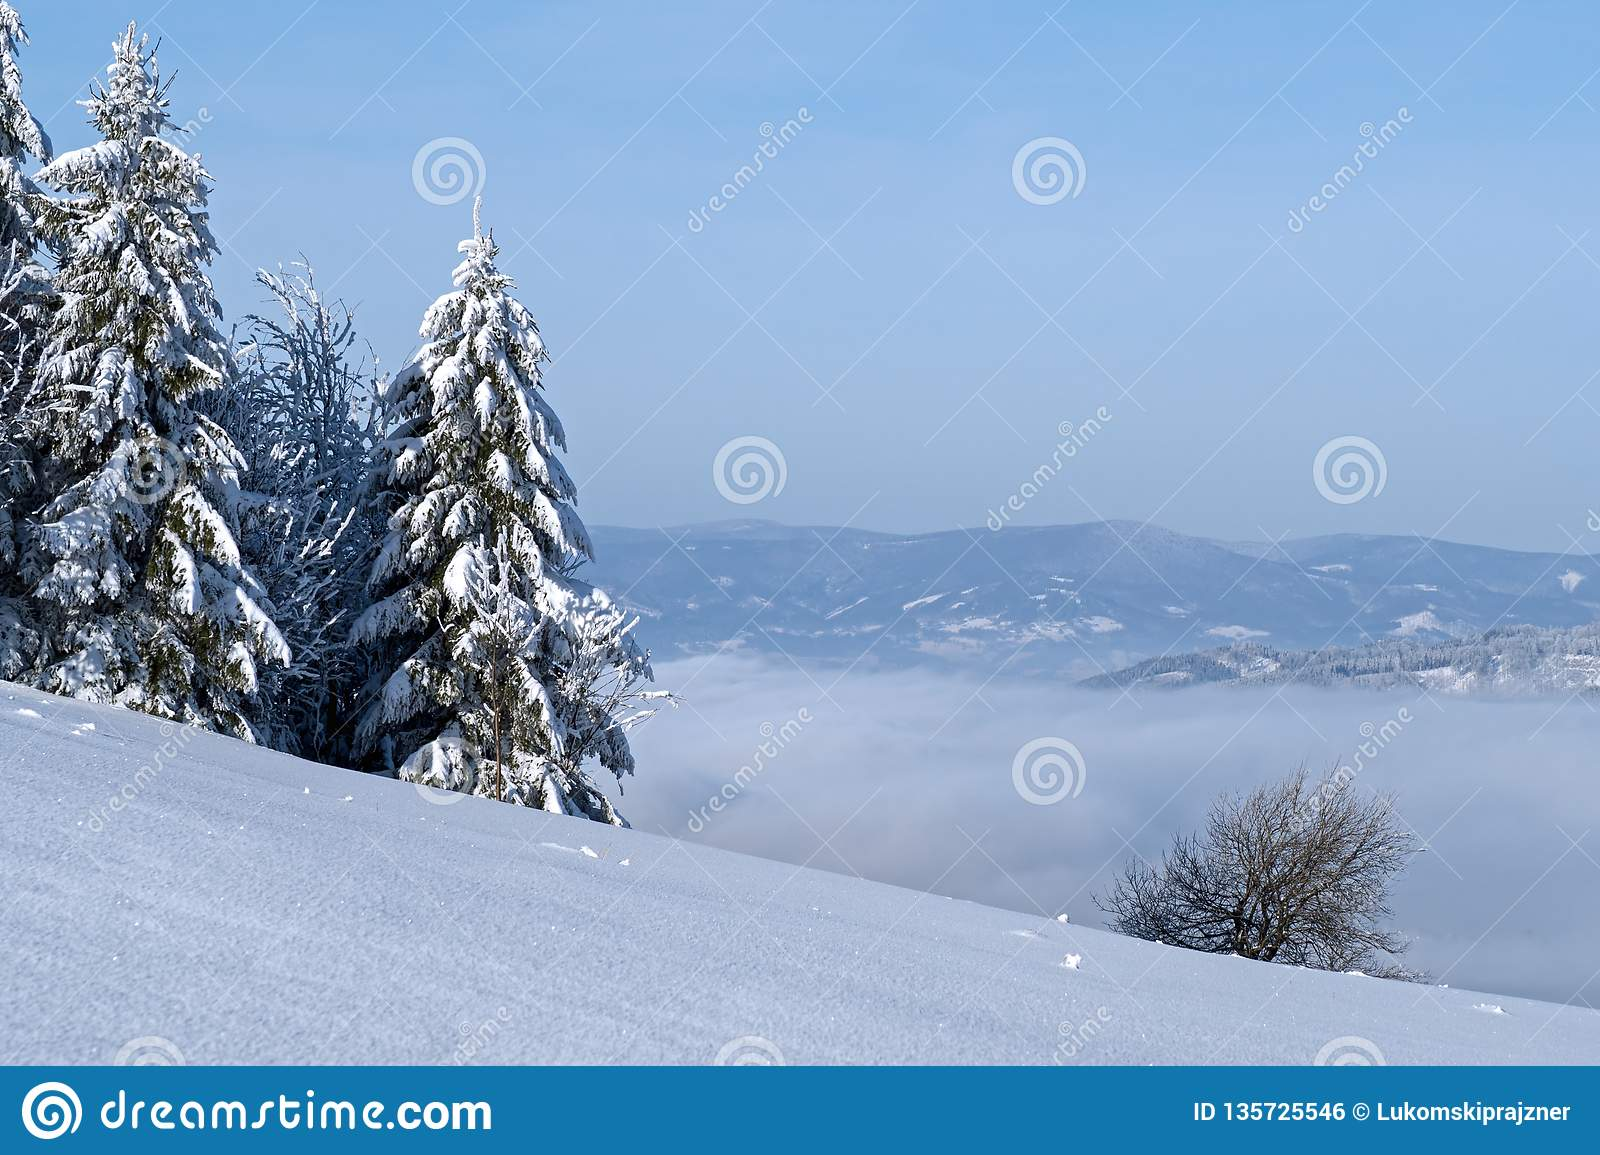 Winter in der Landschaft